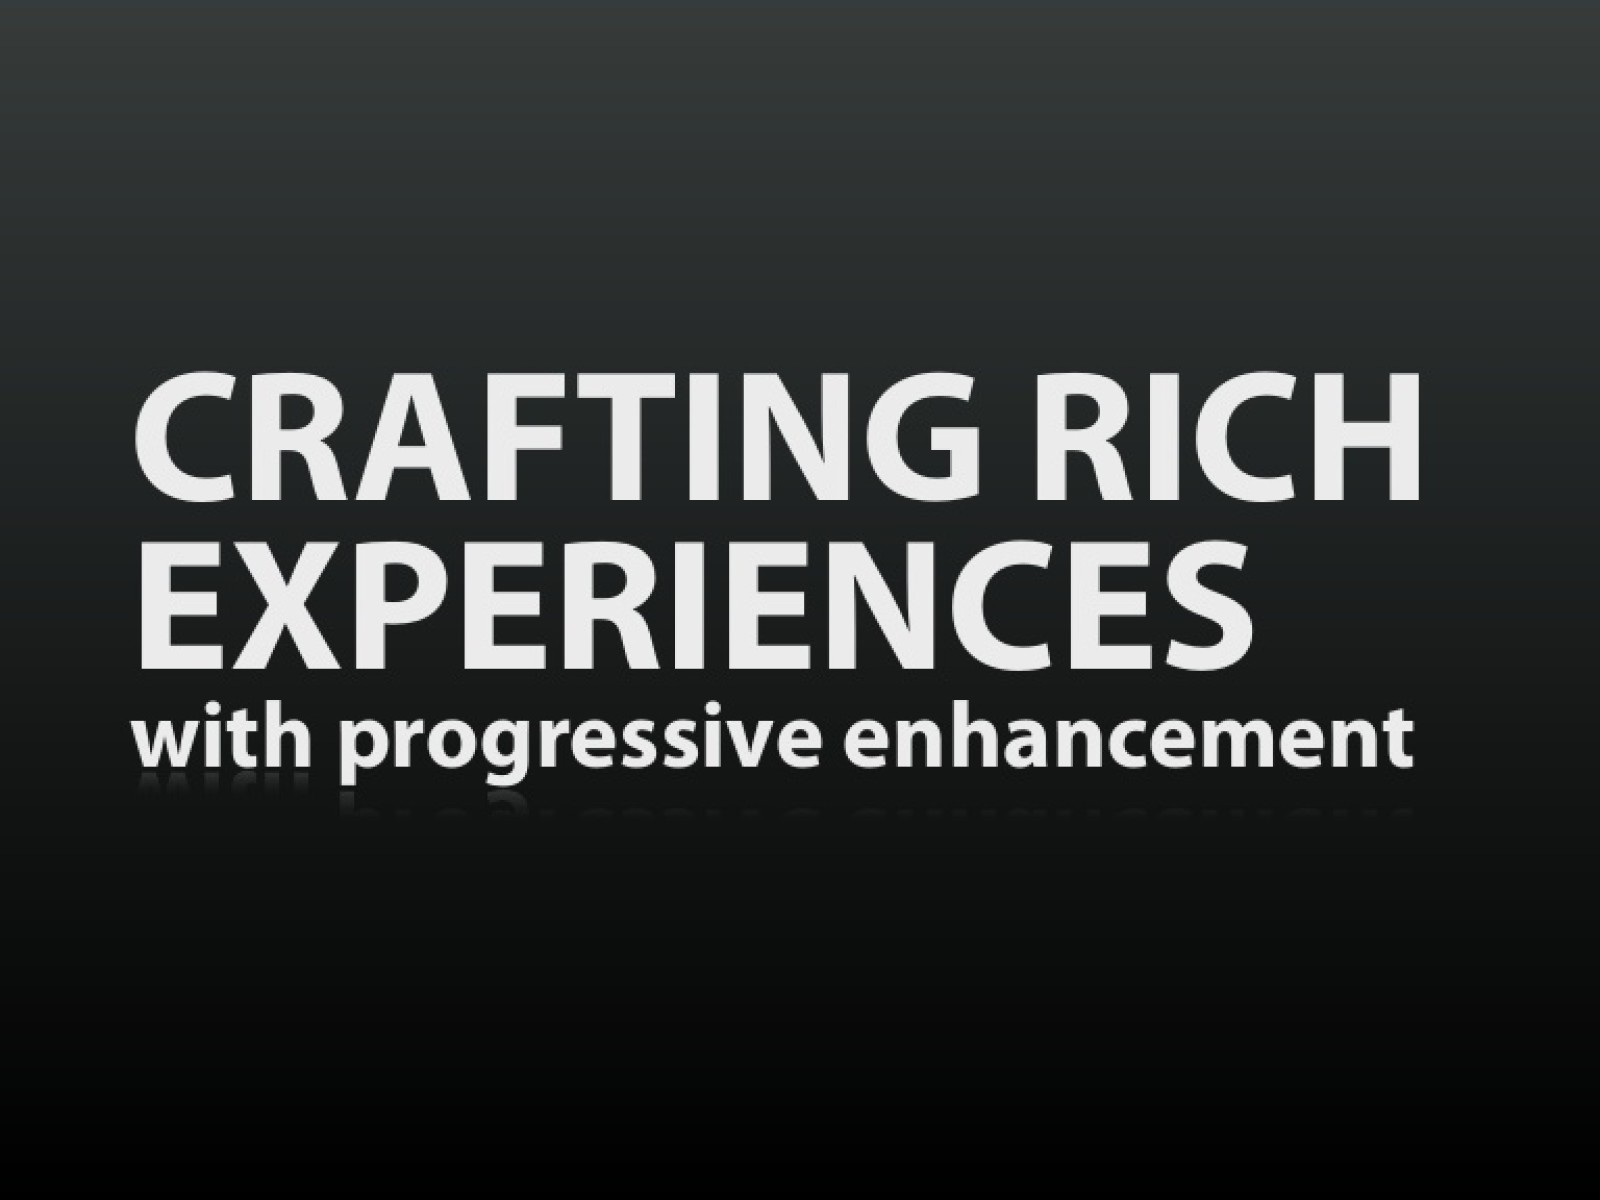 Crafting Rich Experiences with Progressive Enhancement